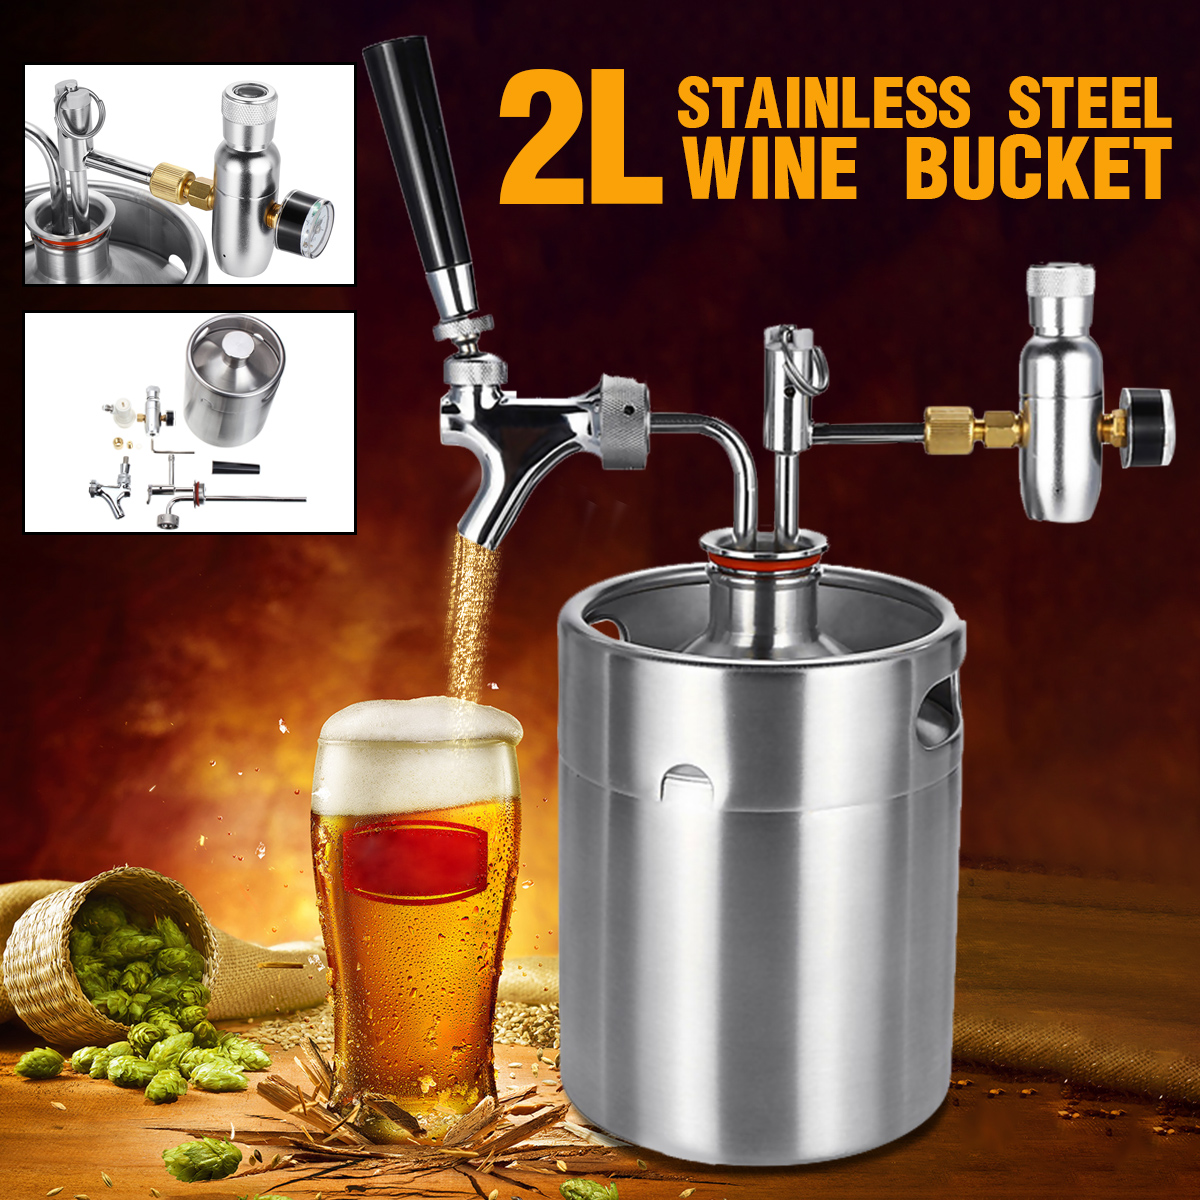 2L Durable Stainless Steel Wine Beer Keg Home Beer Dispenser Growler Beer Brewing Craft Mini Beer Keg With Faucet Pressurized